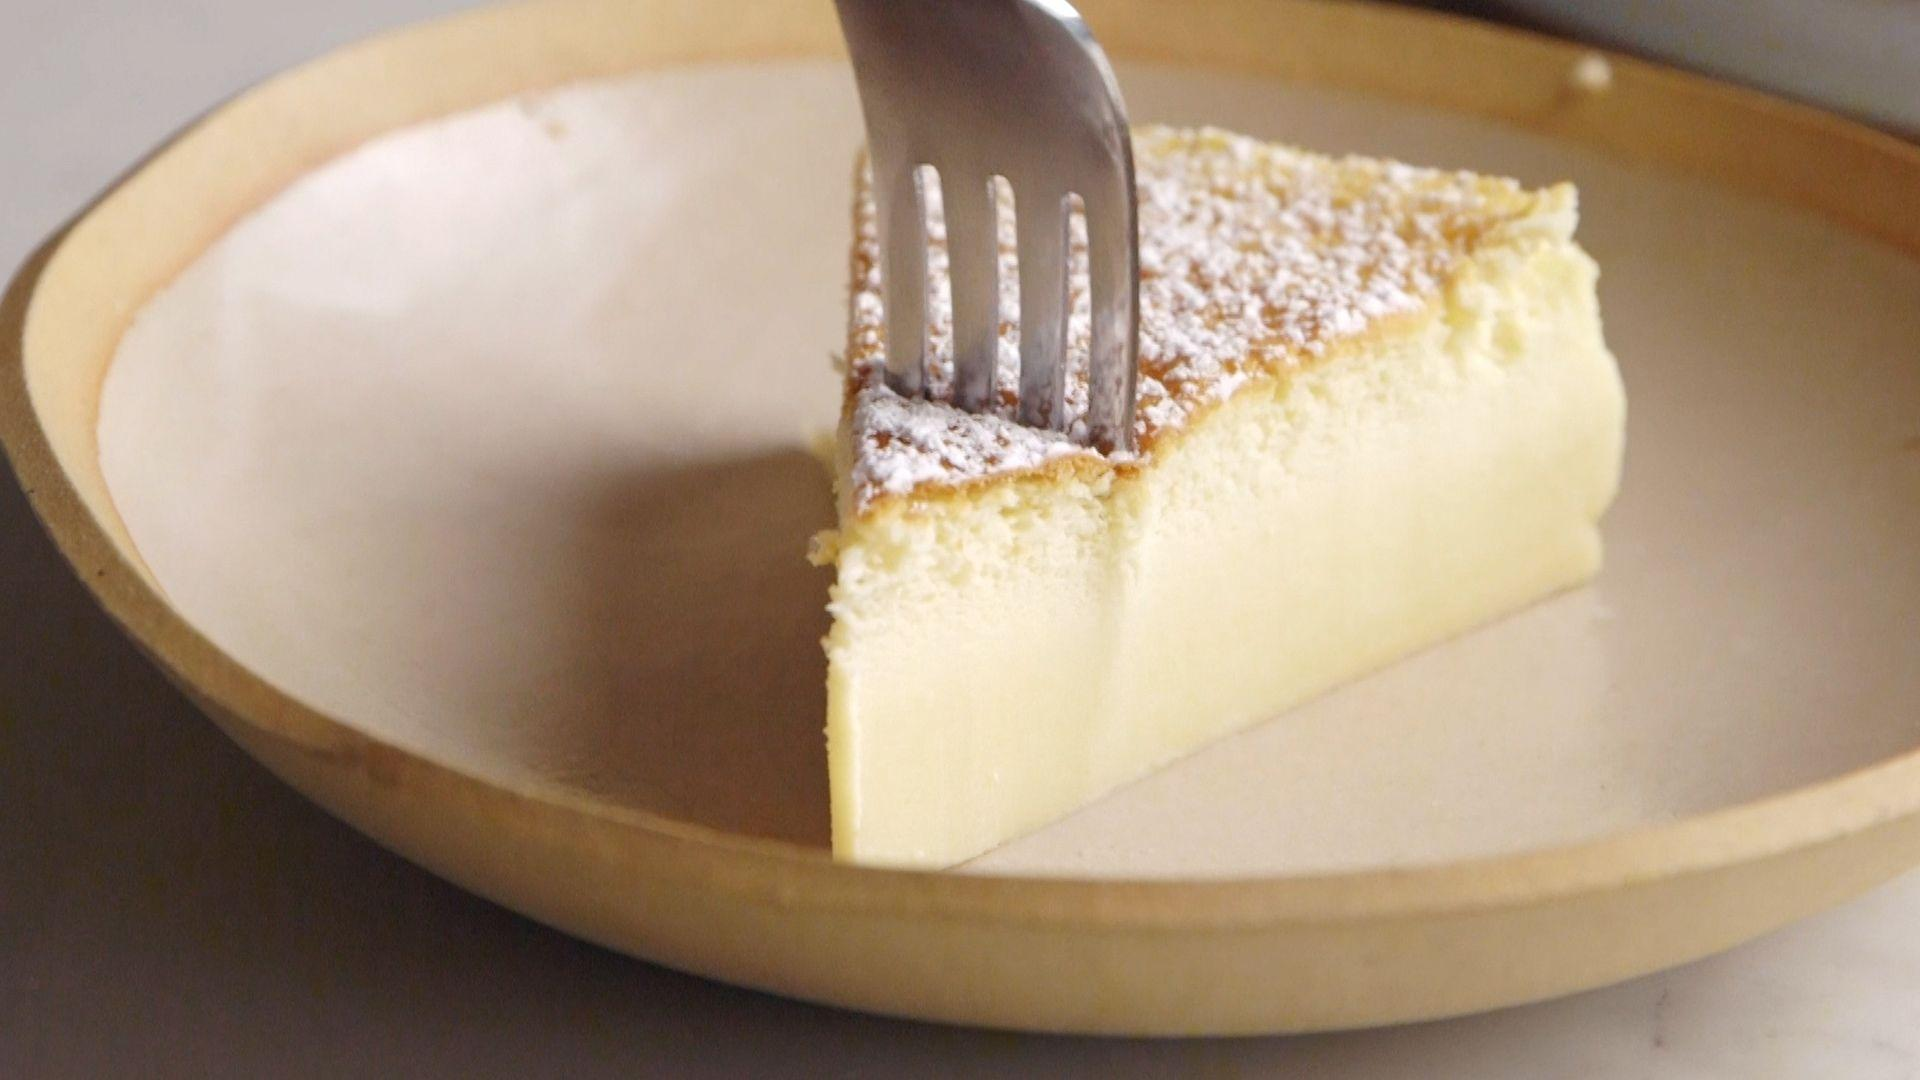 Japanese Cheesecake Recipe: The 3-ingredient Japanese Cheesecake That Everyone Is